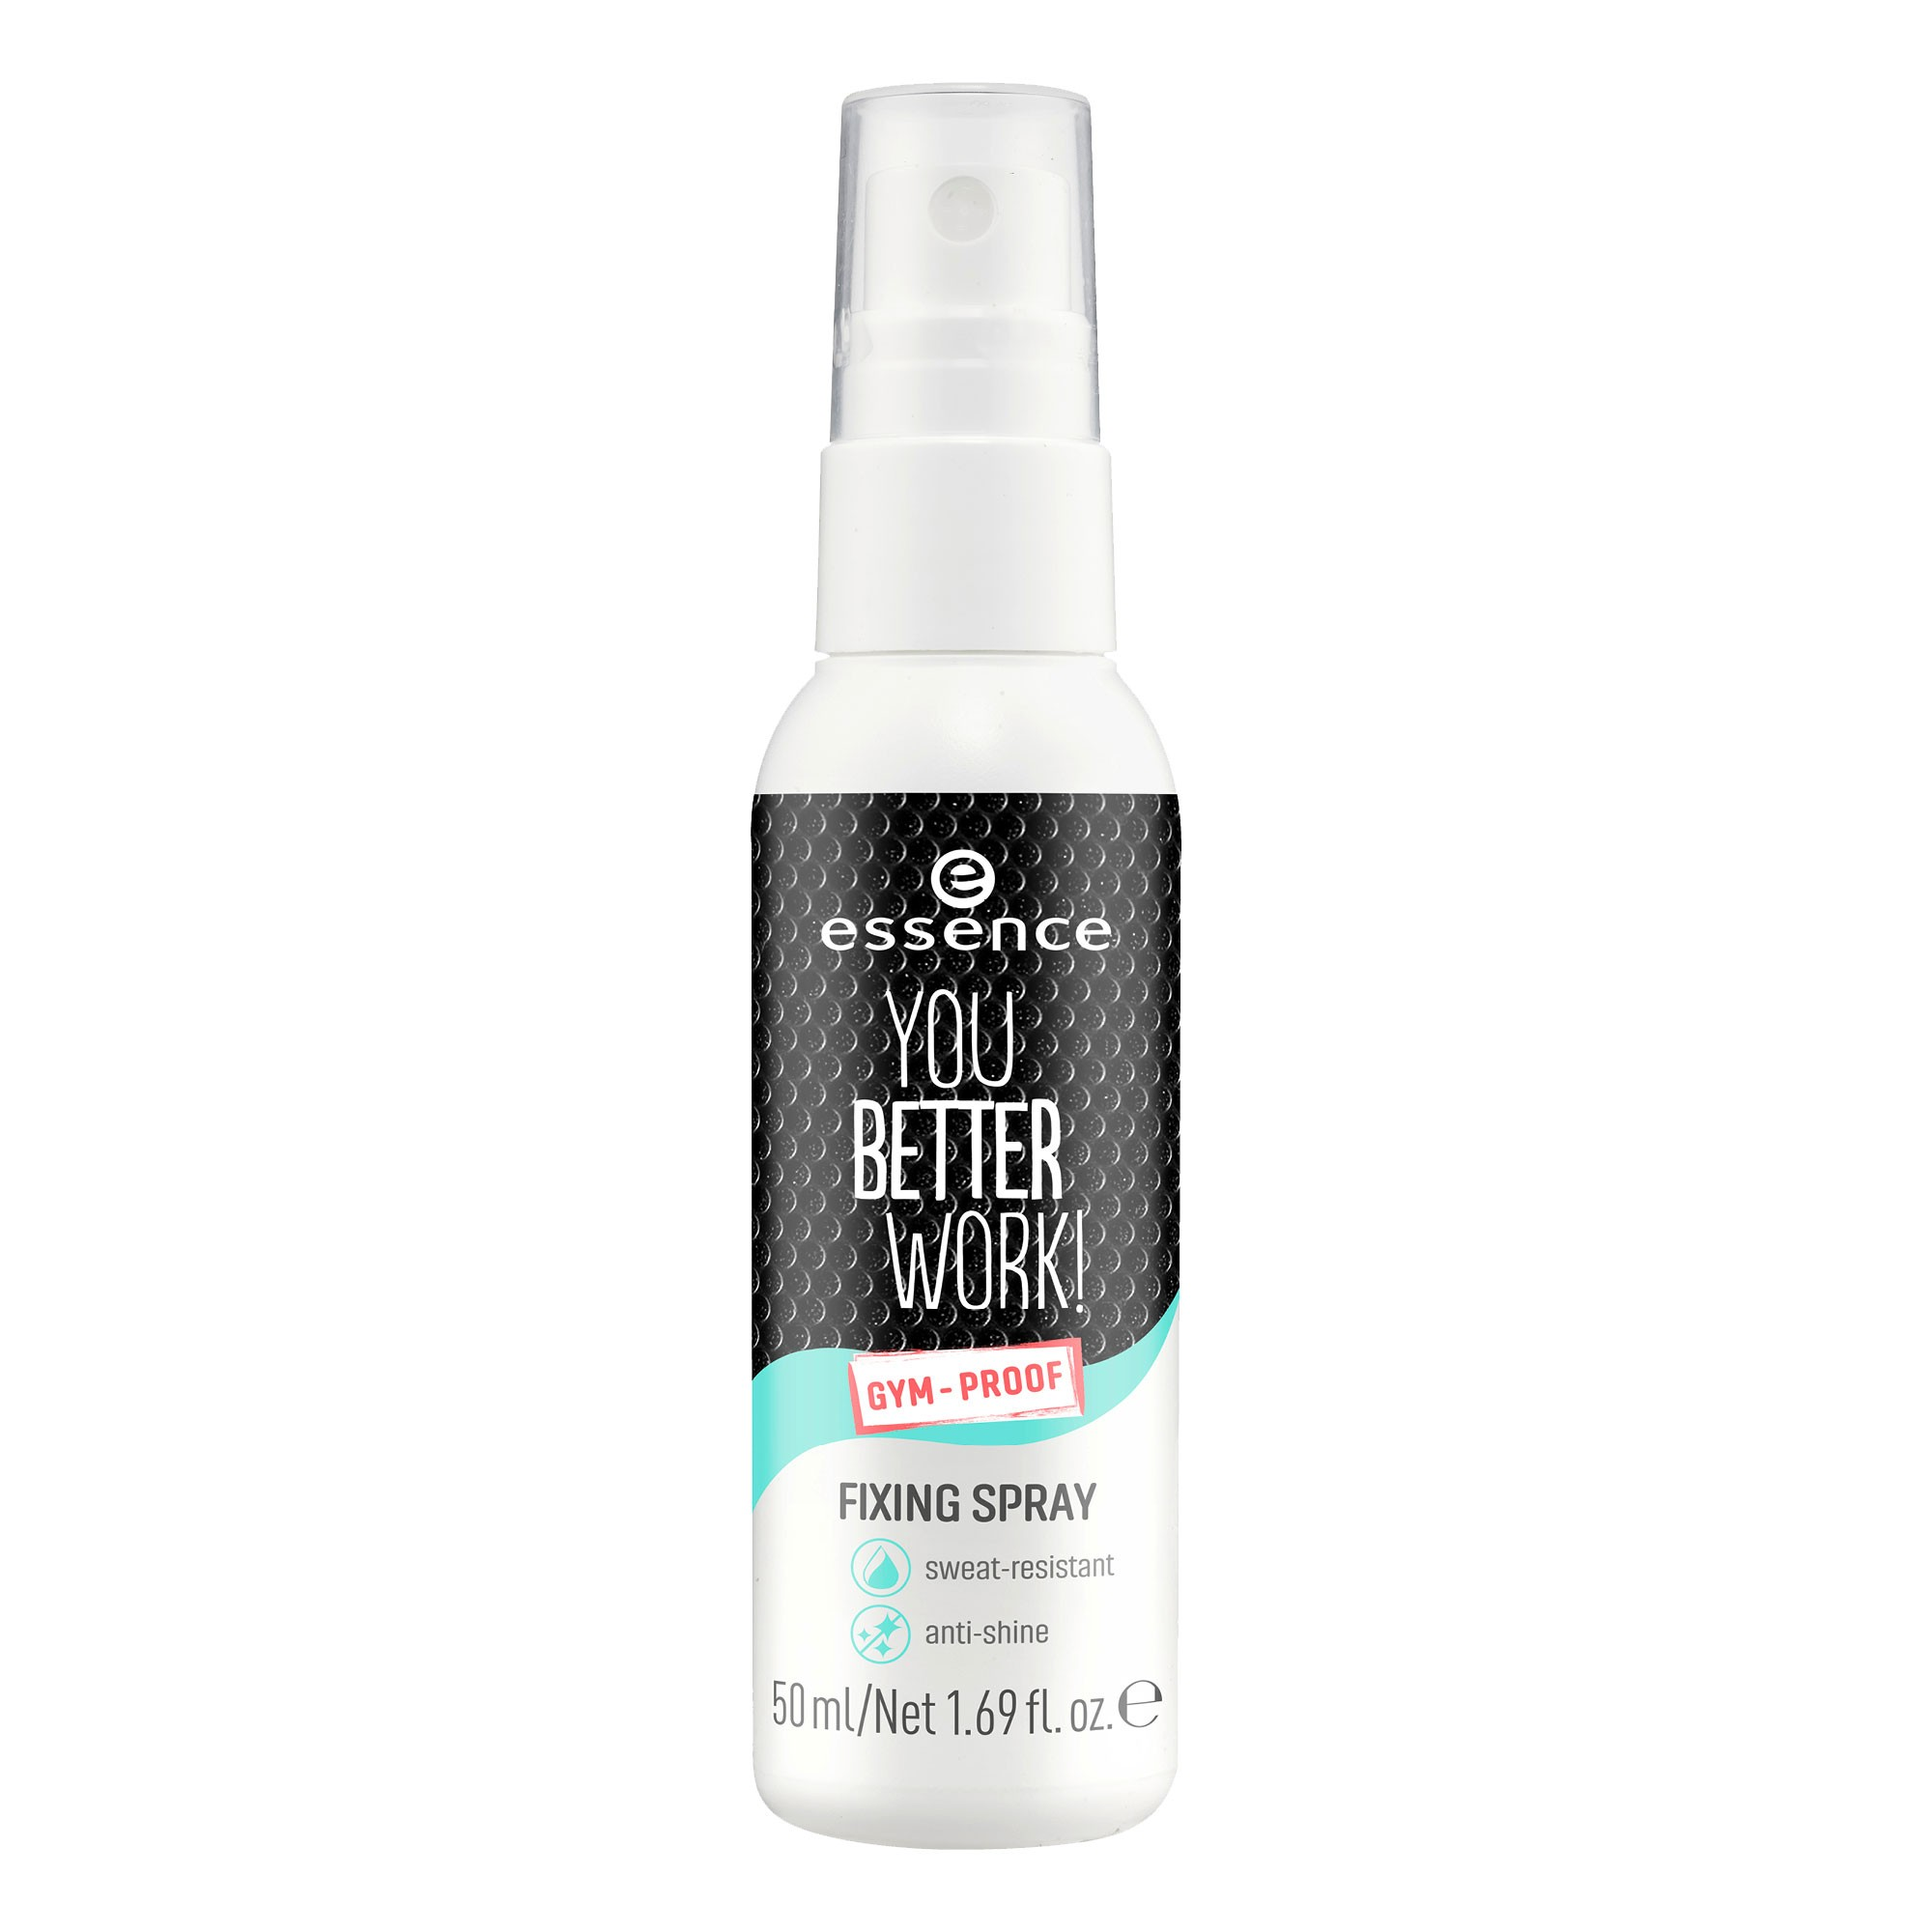 Make-Up Fixierspray - You Better Work! Fixing Spray